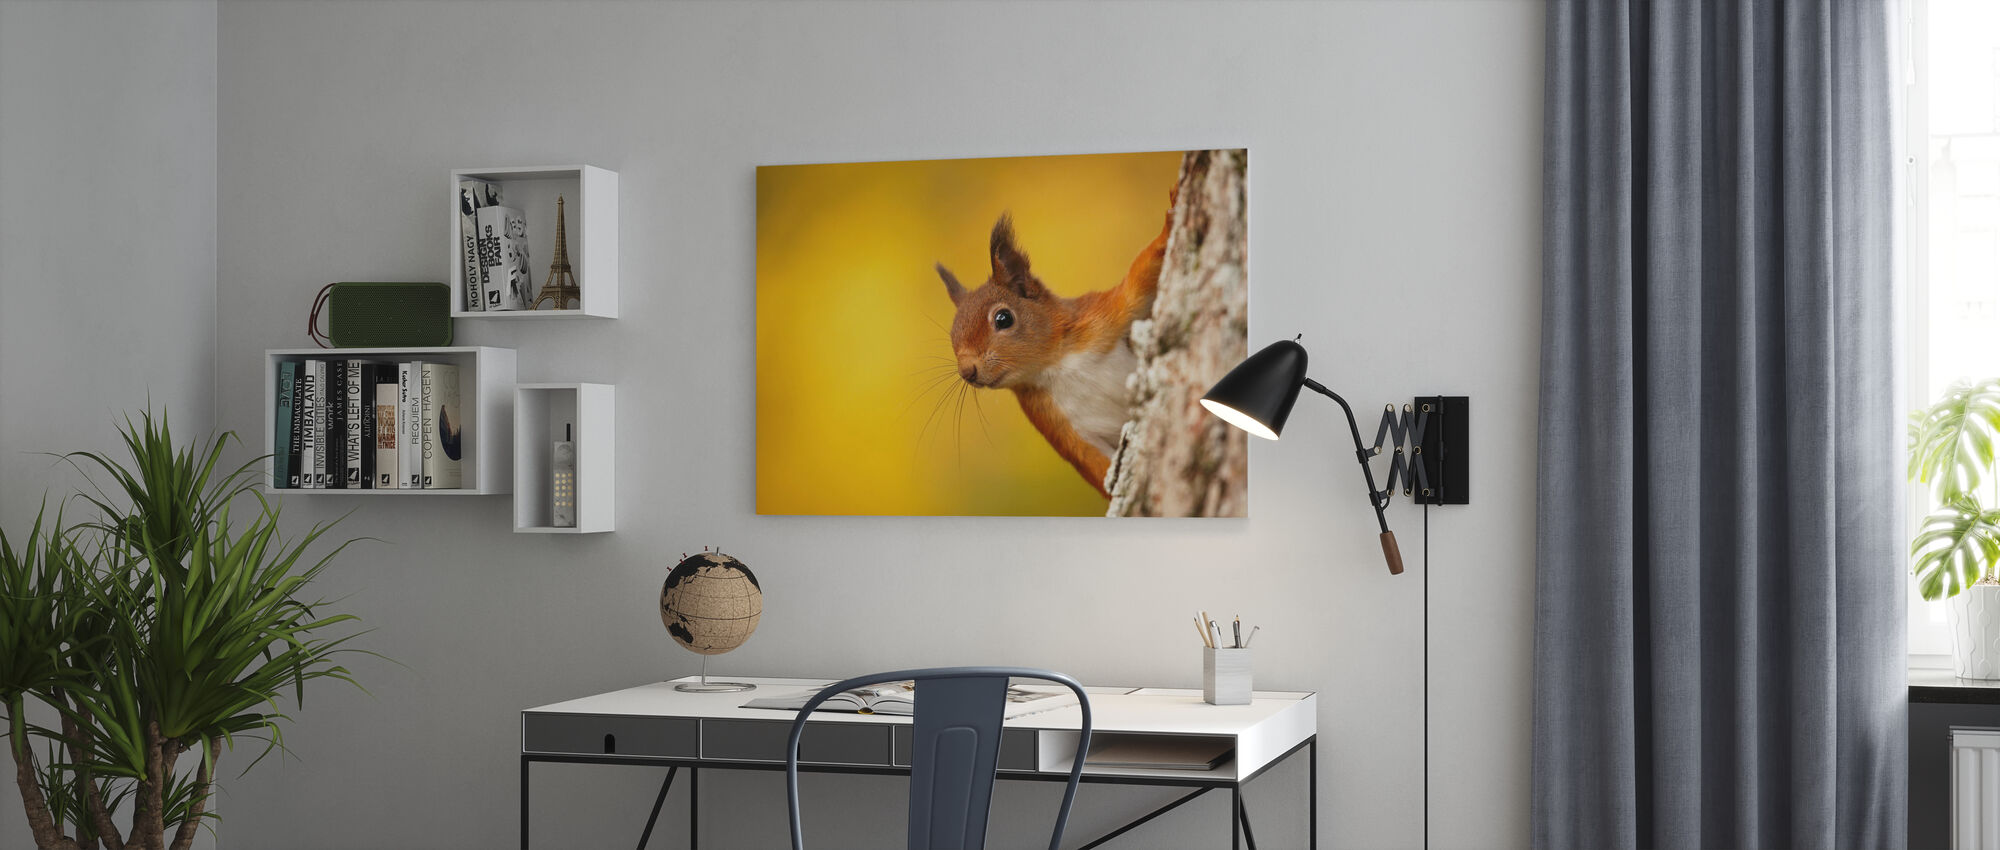 Red Squirrel with Autumn Colors - Canvas print - Office